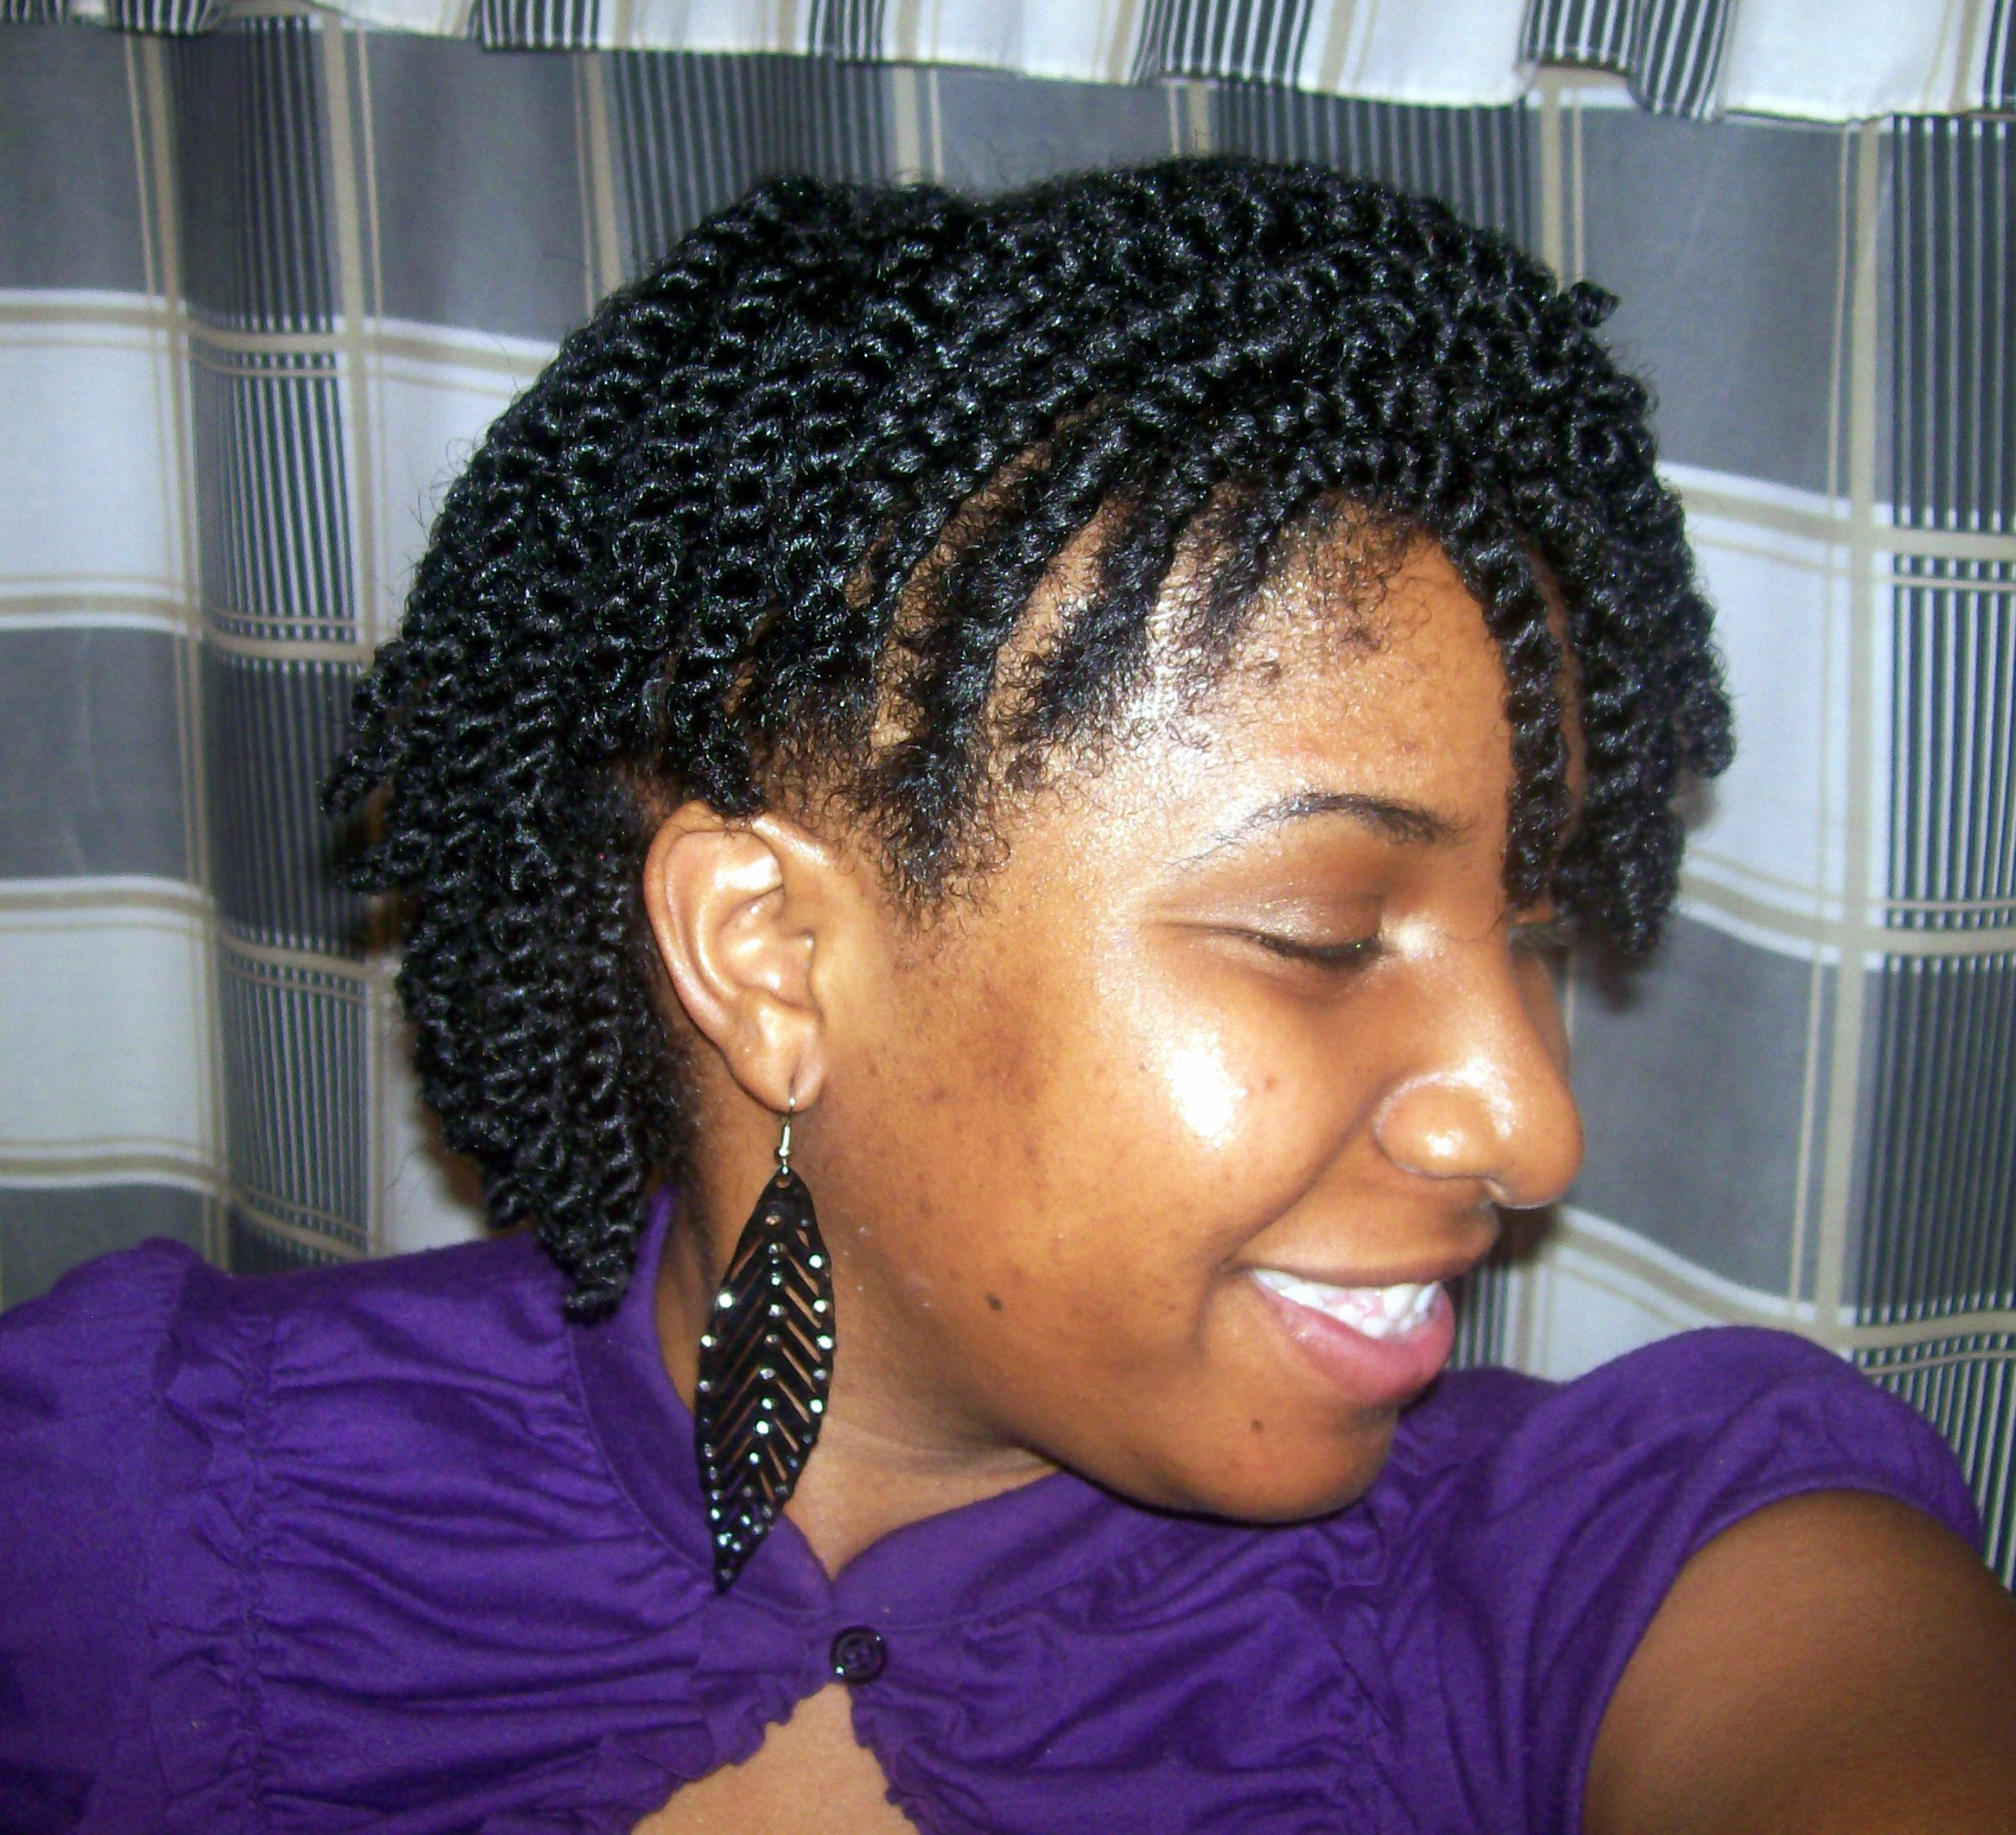 Best ideas about Flat Twist Hairstyles On Natural Hair . Save or Pin Flat Twist Updo Natural Hair Now.